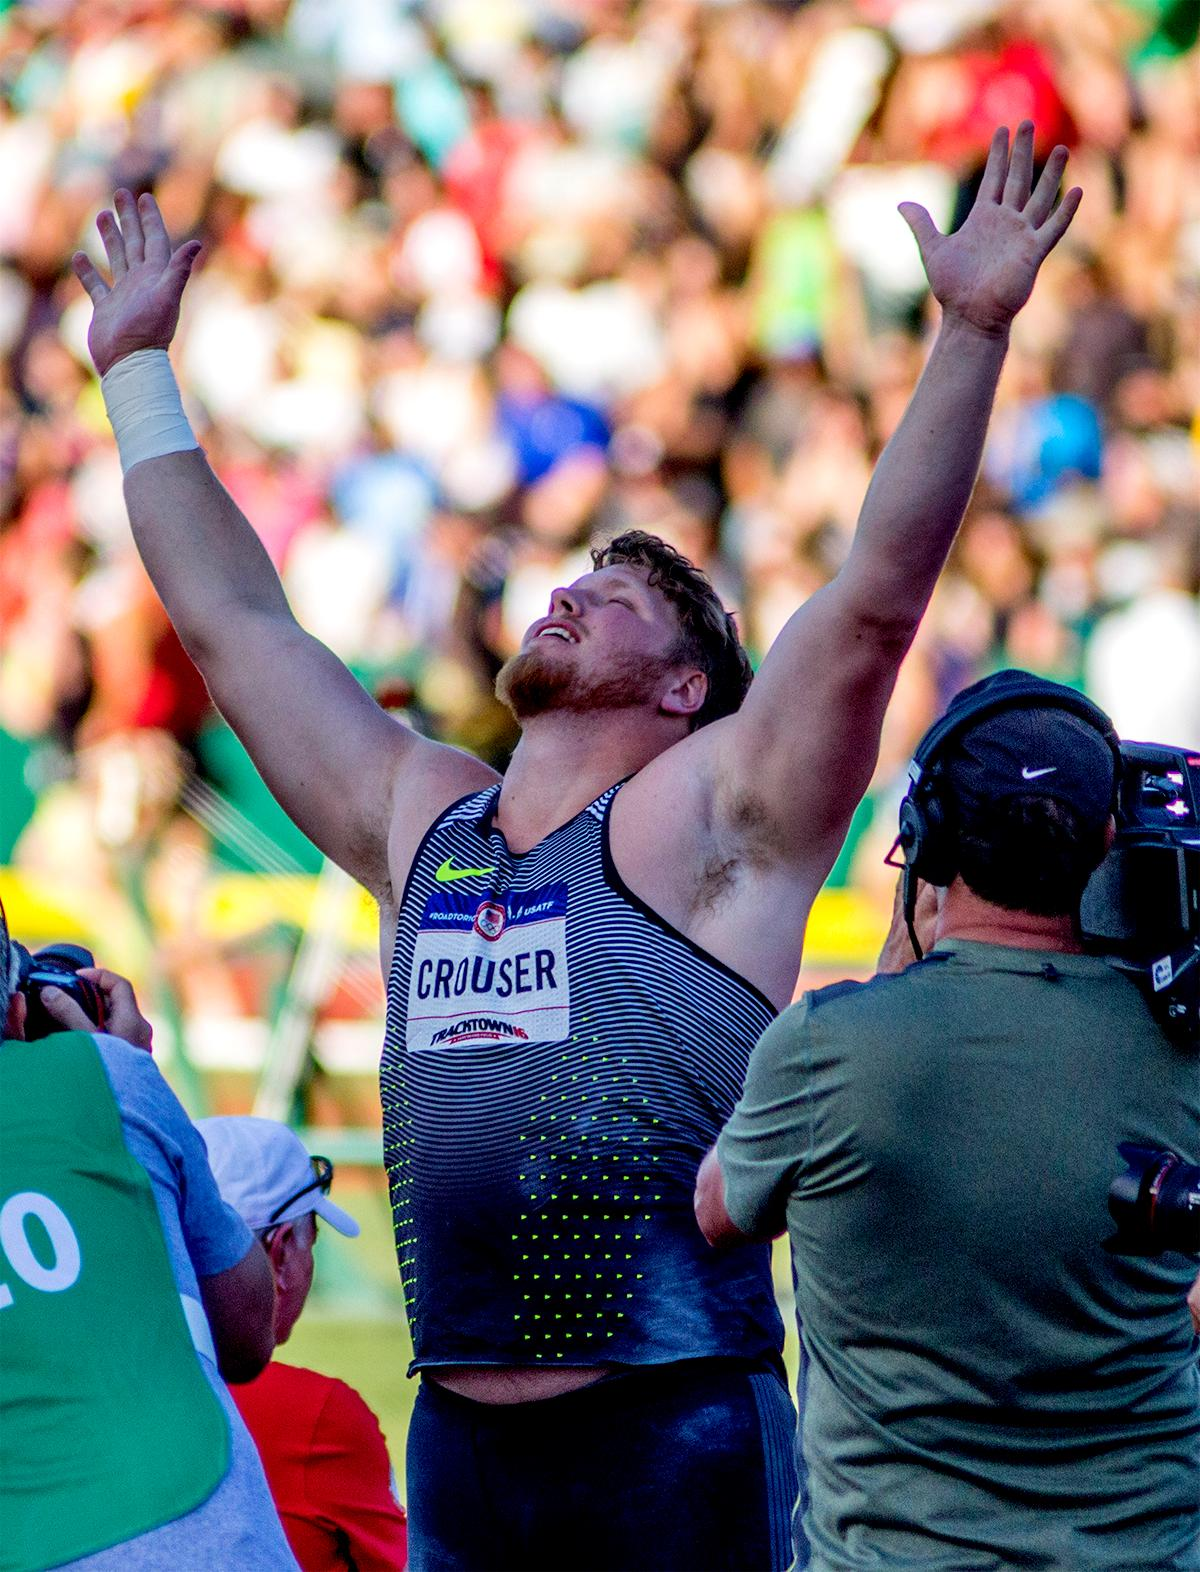 Nike's Ryan Crouser throws his arms up upon winning the mens shot put competition. Crouser won with a final distance of 20.97m. Day one of the U.S. Olympic Trials Track and Field began on Friday at Hayward Field in Eugene, Oregon and will continue through July 10. Photo by August Frank, Oregon News Lab